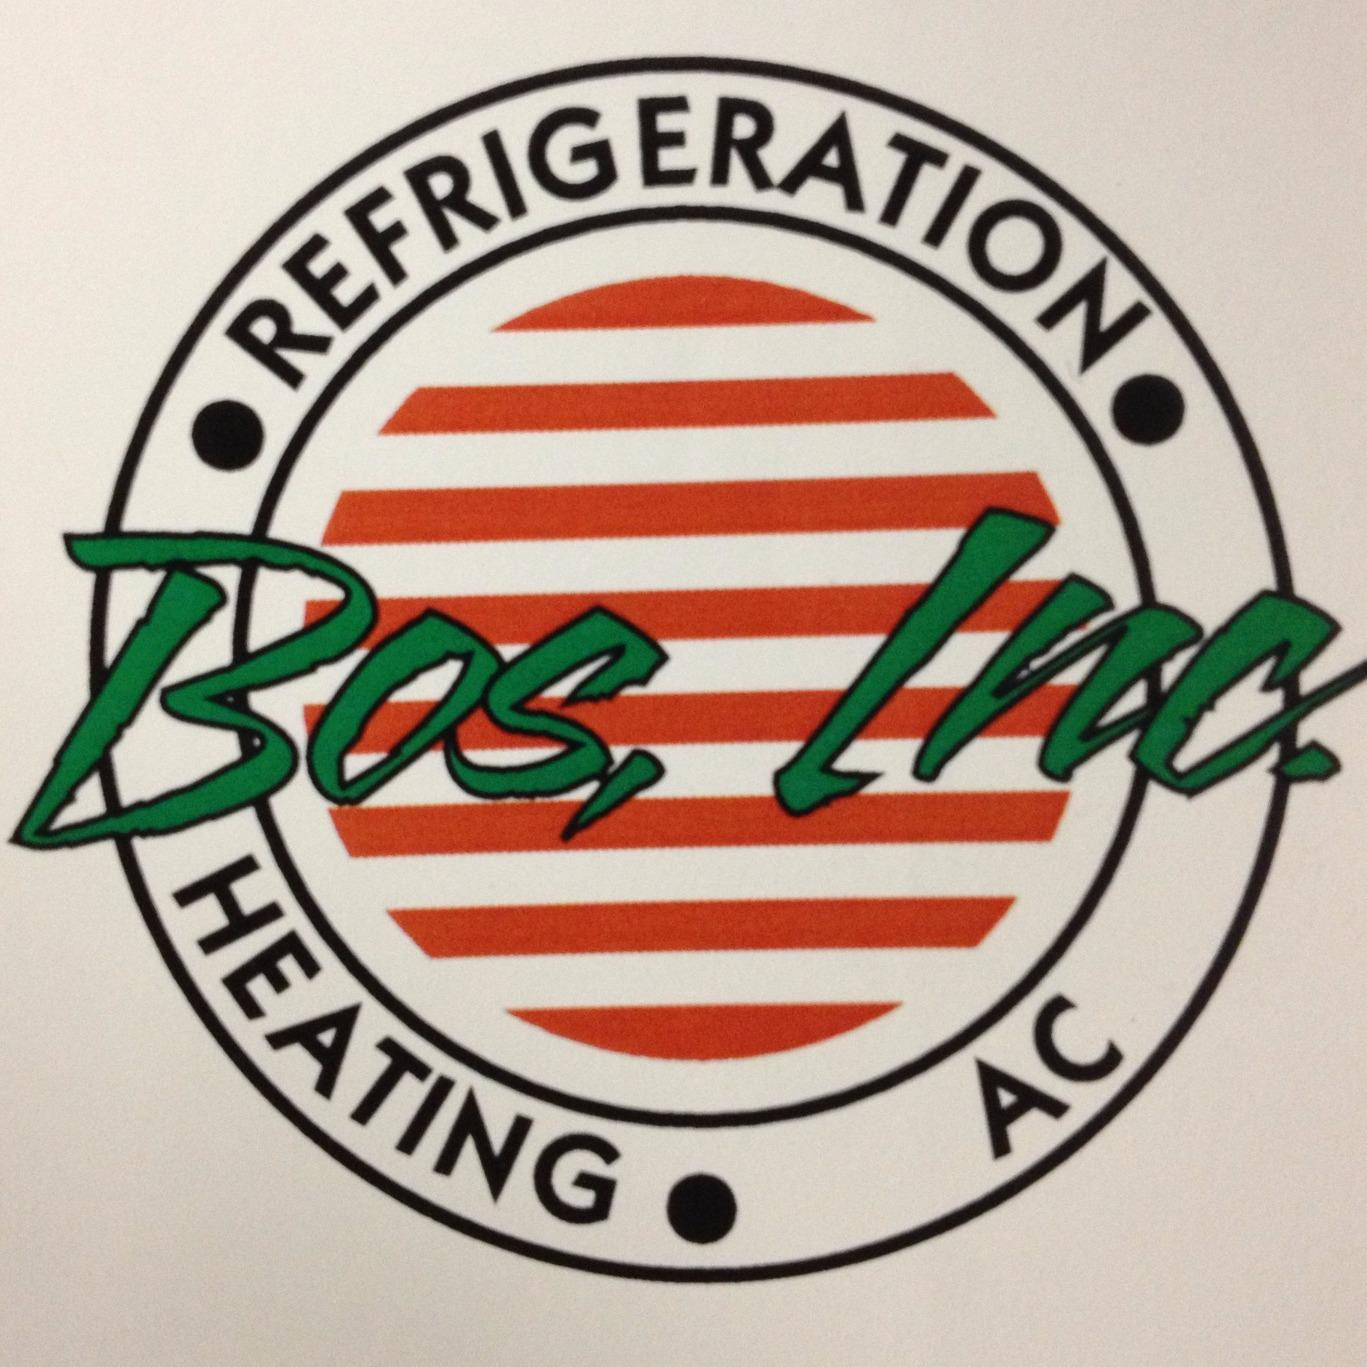 Bos Refrigeration - Heating and Air Conditioning - Sunnyside, WA - Heating & Air Conditioning